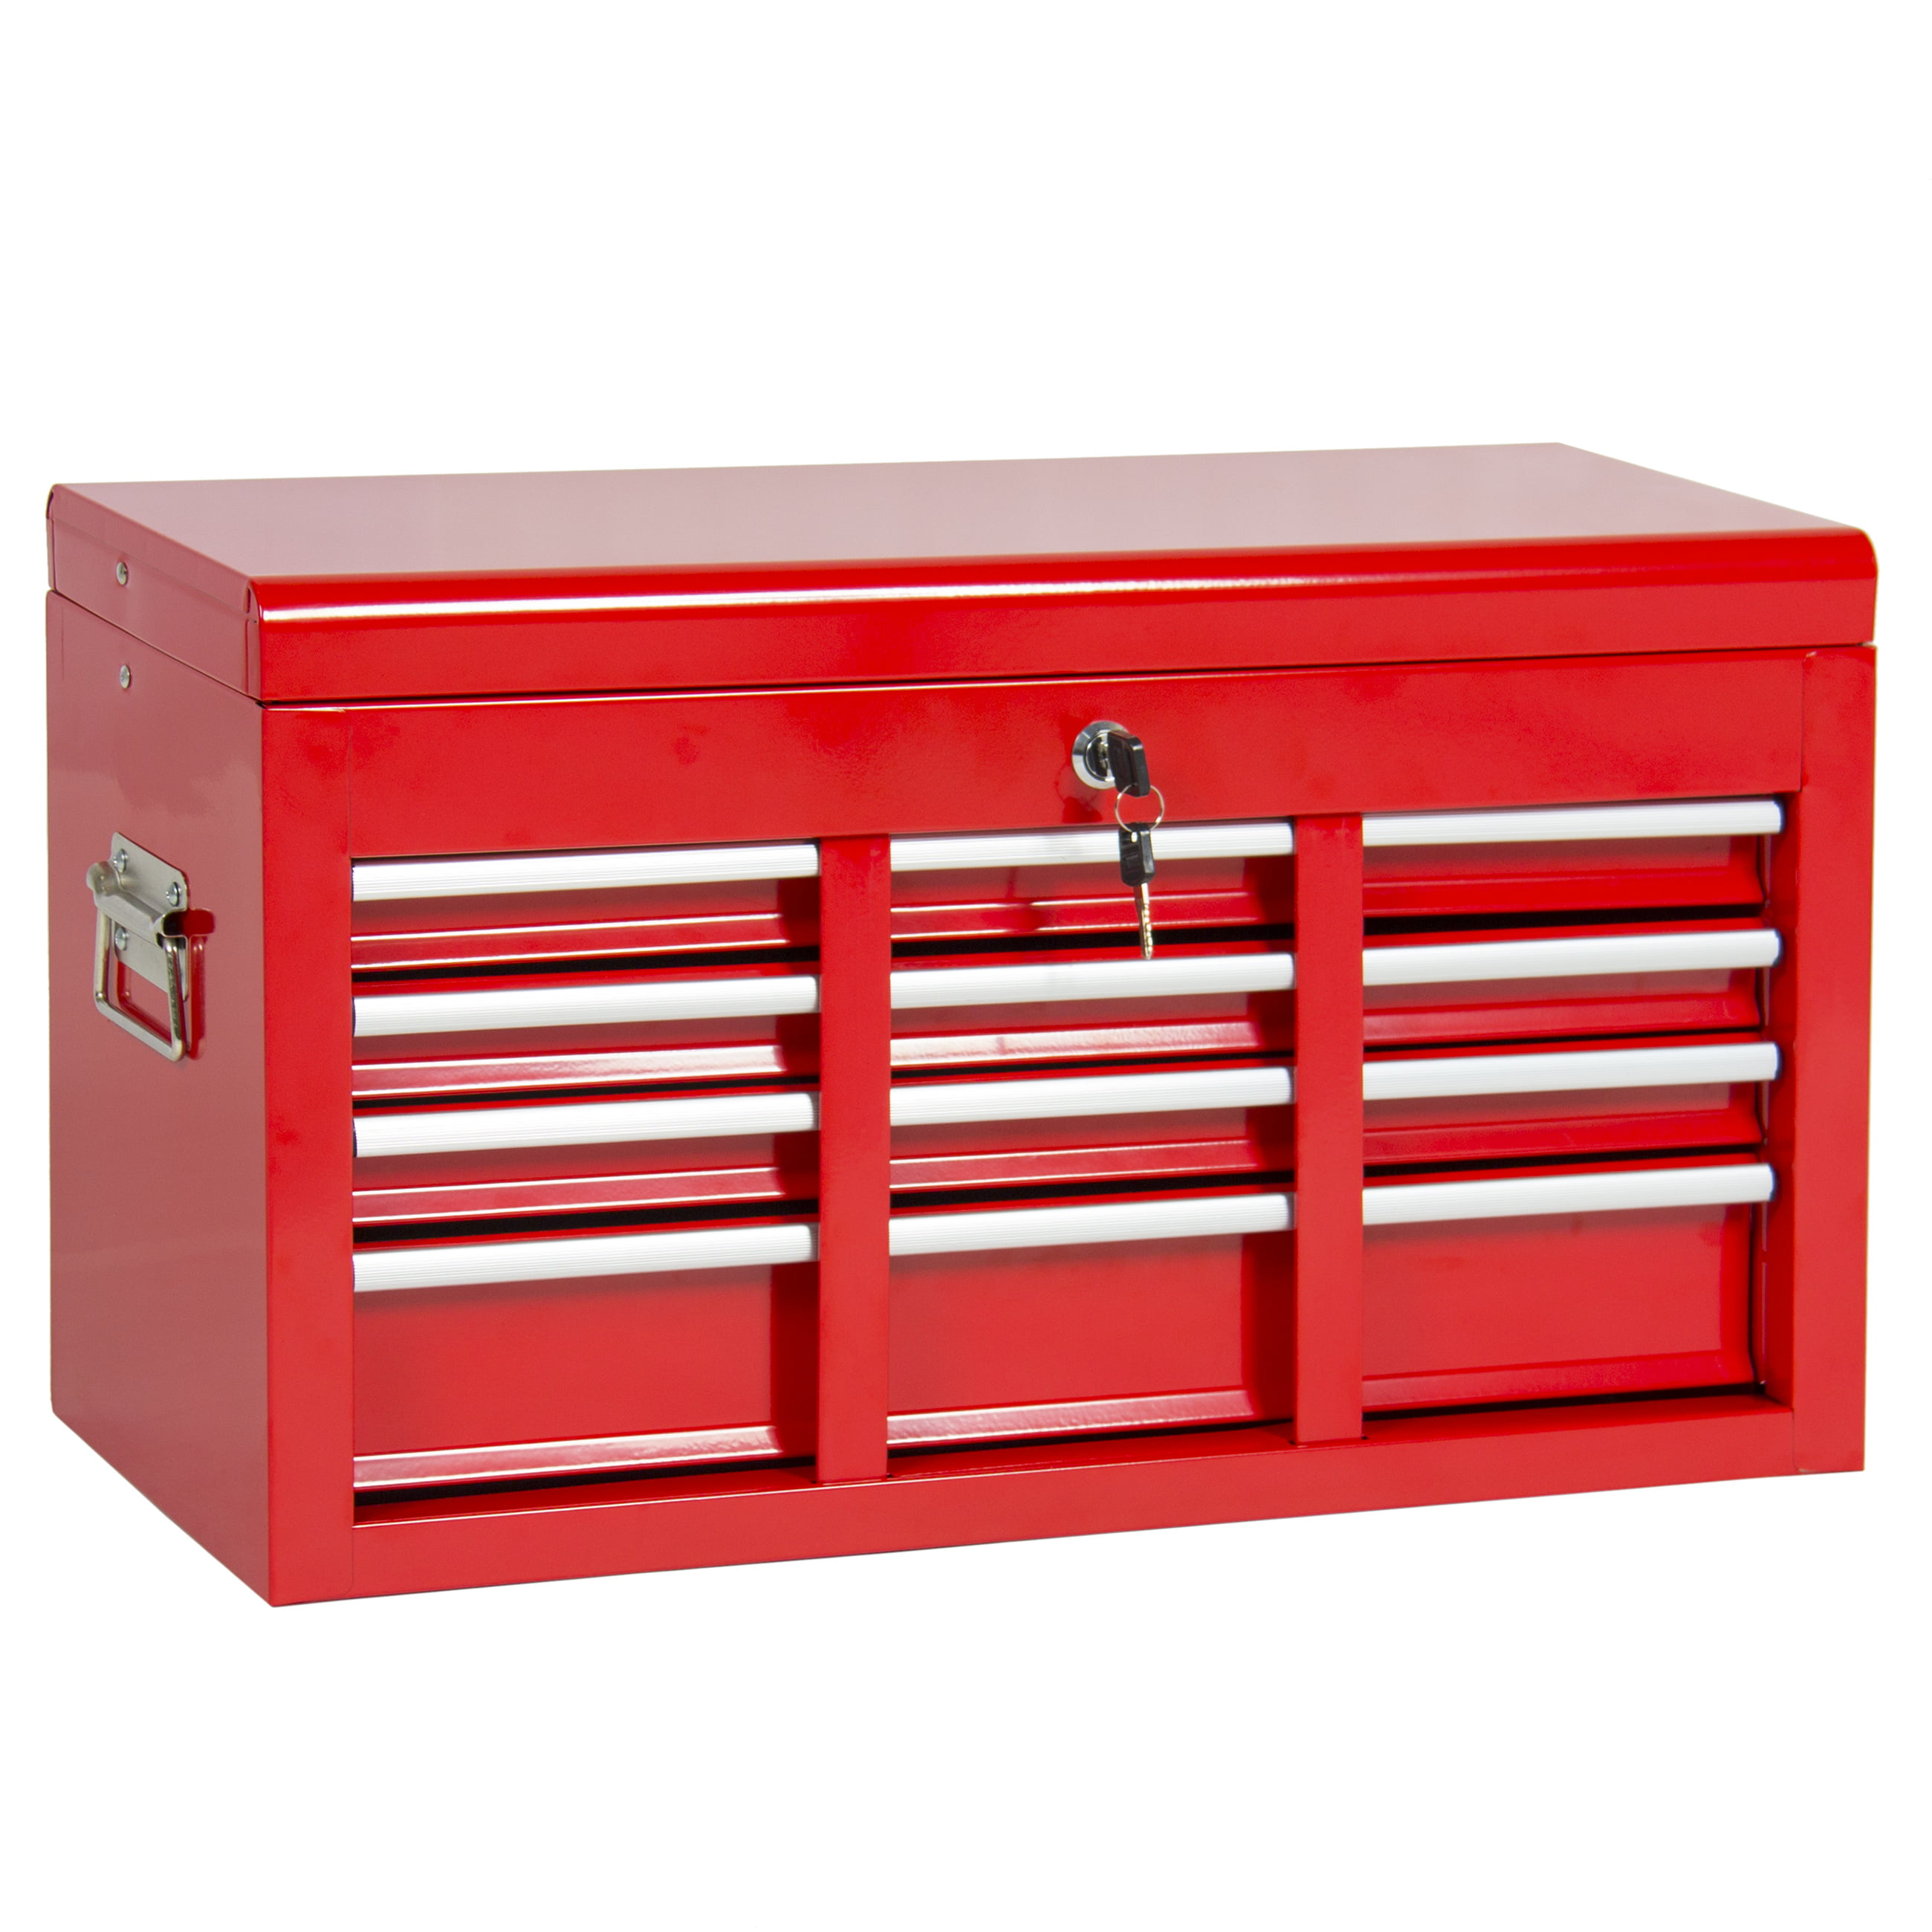 at online drawers honey find from craft organizer and ribbon cart supplies hang rollers multi portable storage purpose drawer do prices compare offers dowels crafts carts can organization